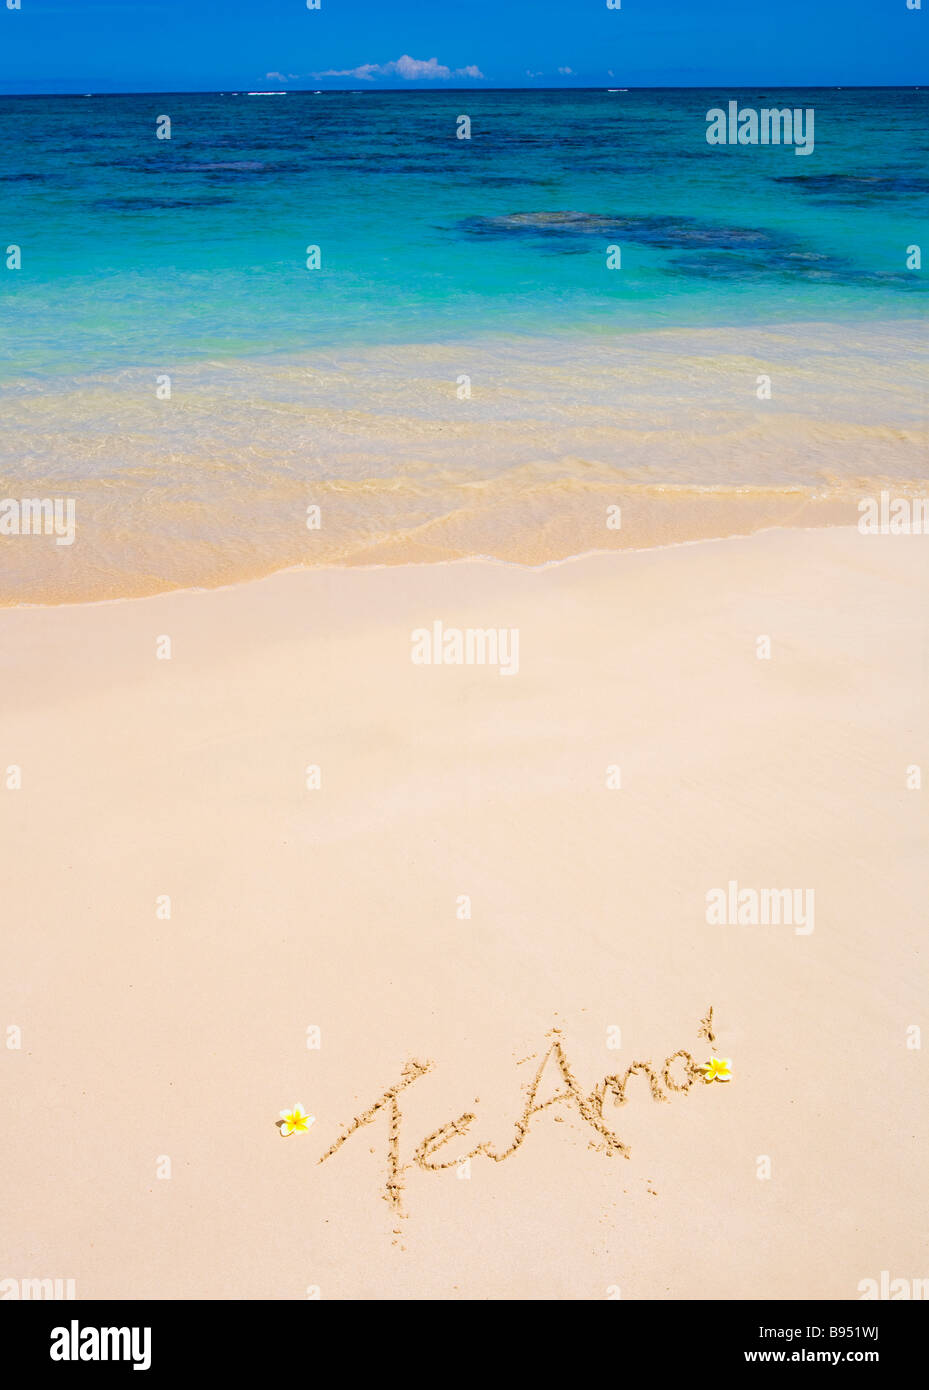 The words 'Te amo' are written on a sandy beach in Hawaii with plumeria blossoms alongside - Stock Image